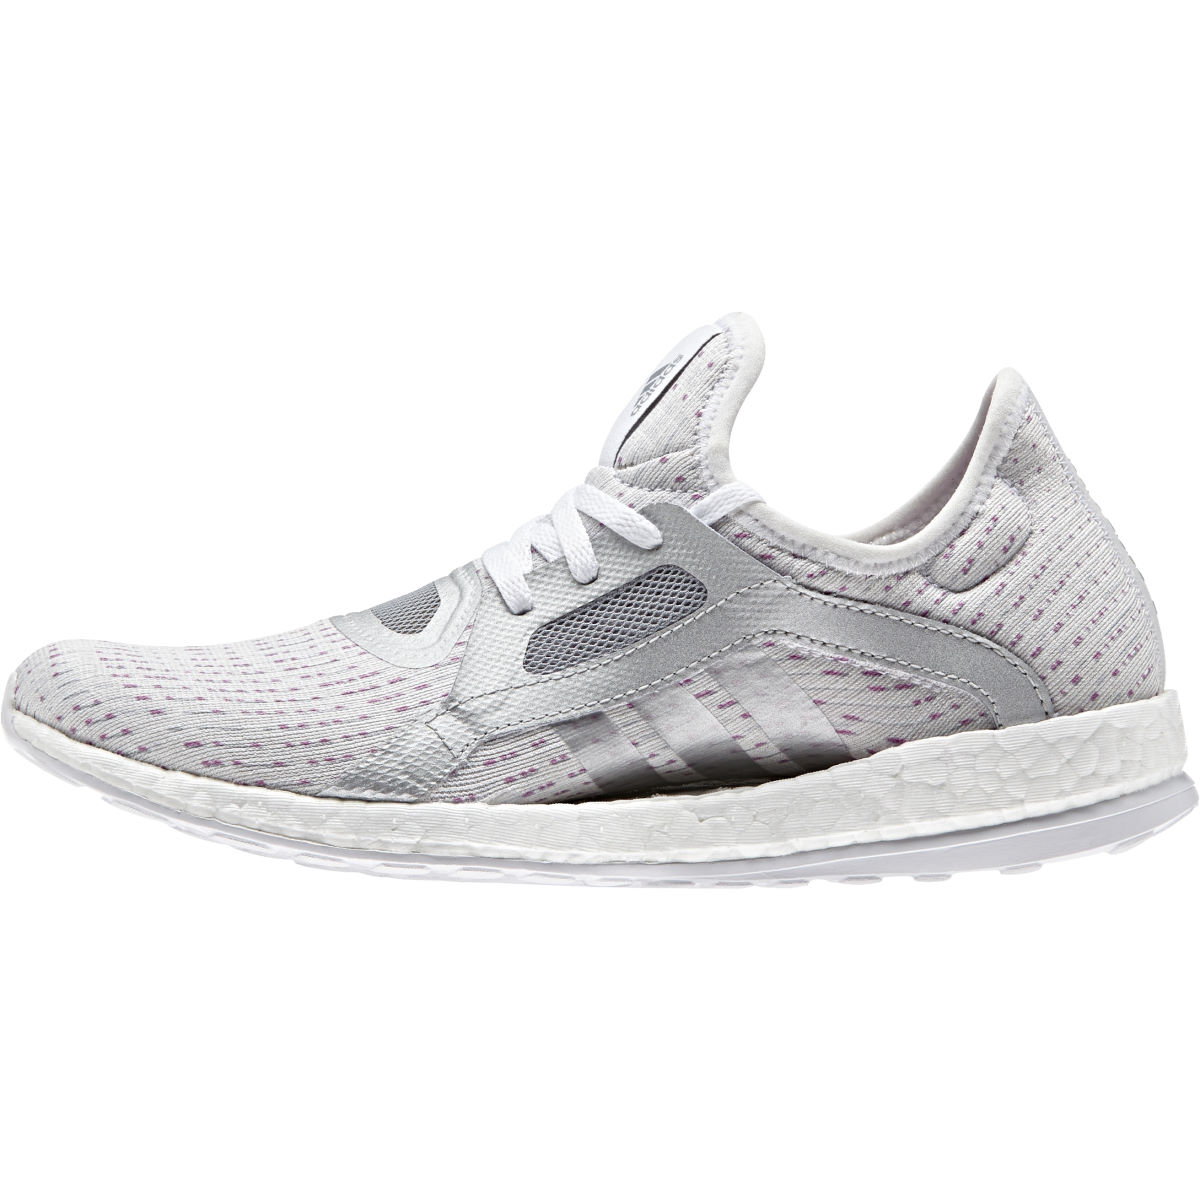 Image of Adidas Women's Pure Boost X (White/Silver, AW16) Training Running Shoes